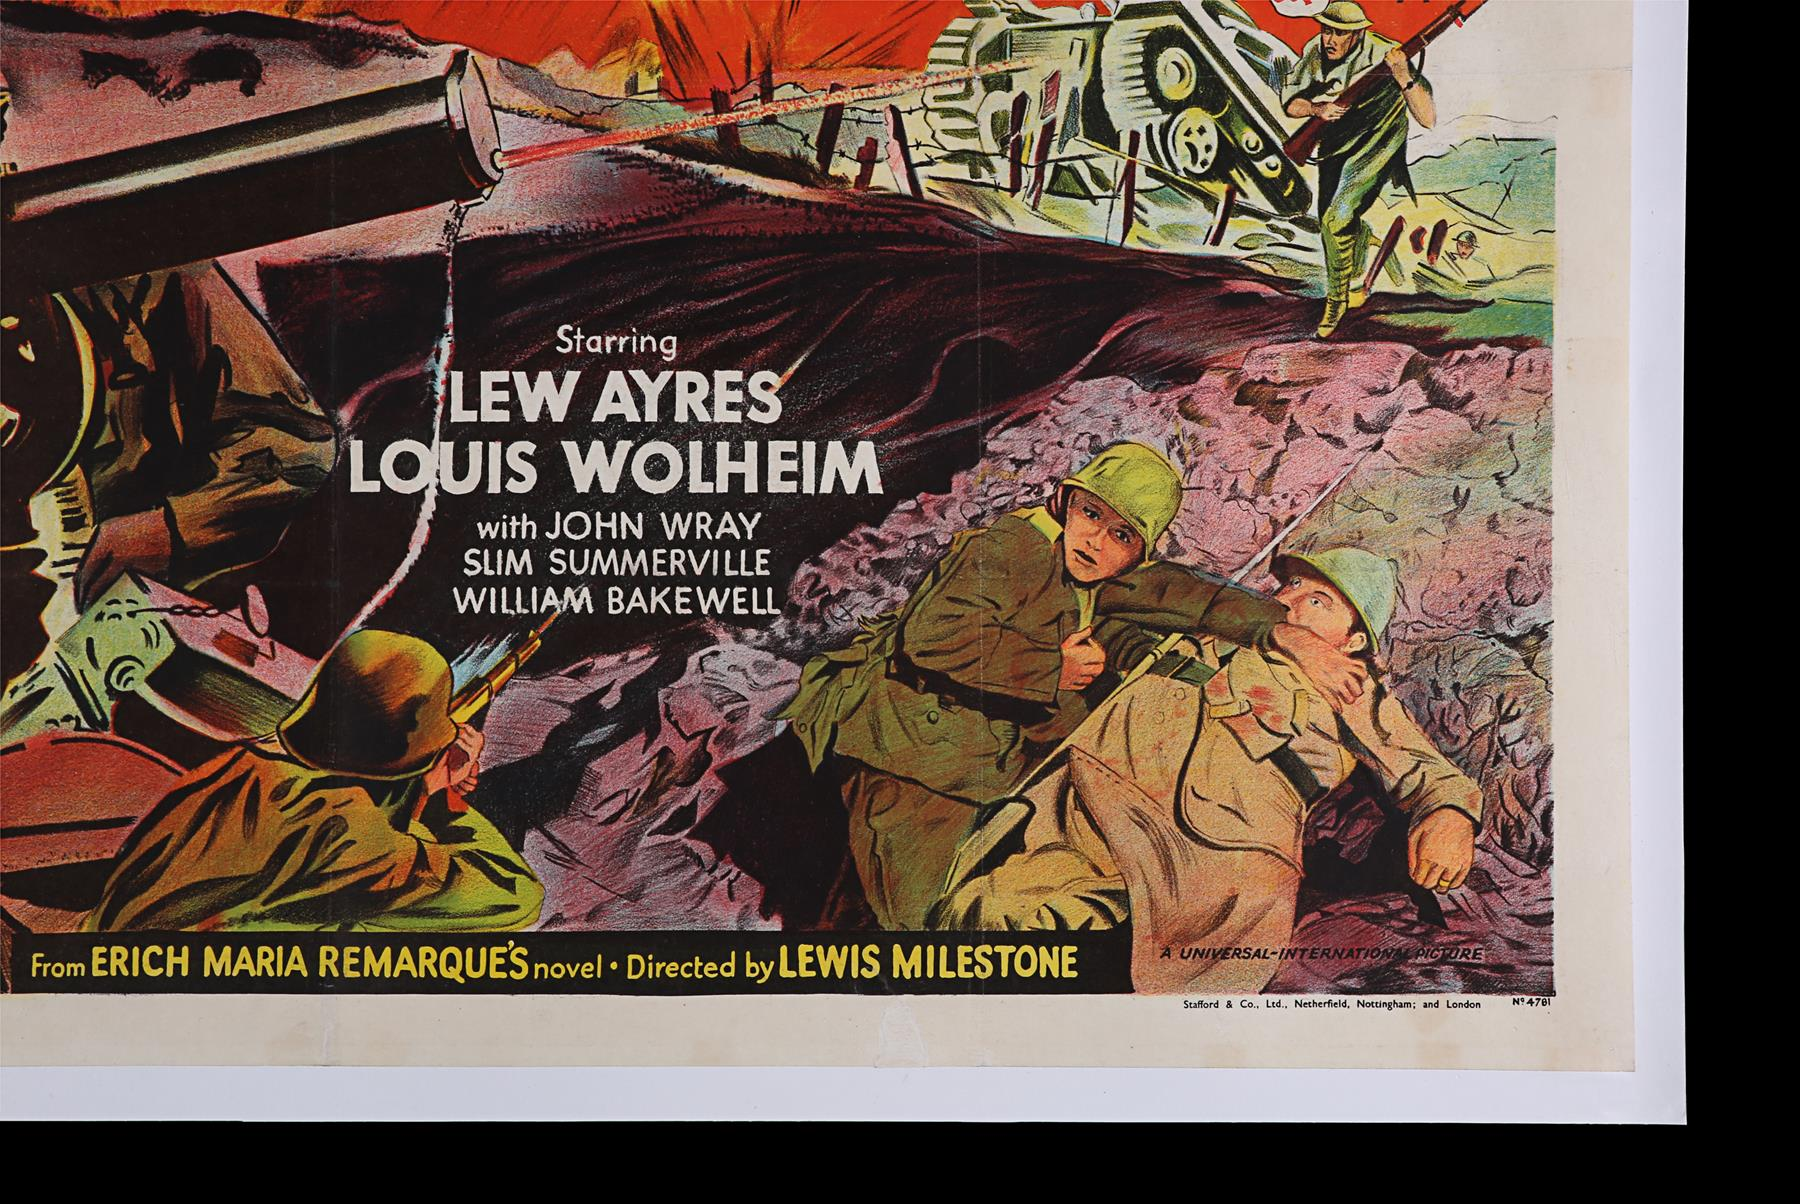 ALL QUIET ON THE WESTERN FRONT (1930) - UK Quad, 1950 - Image 4 of 6